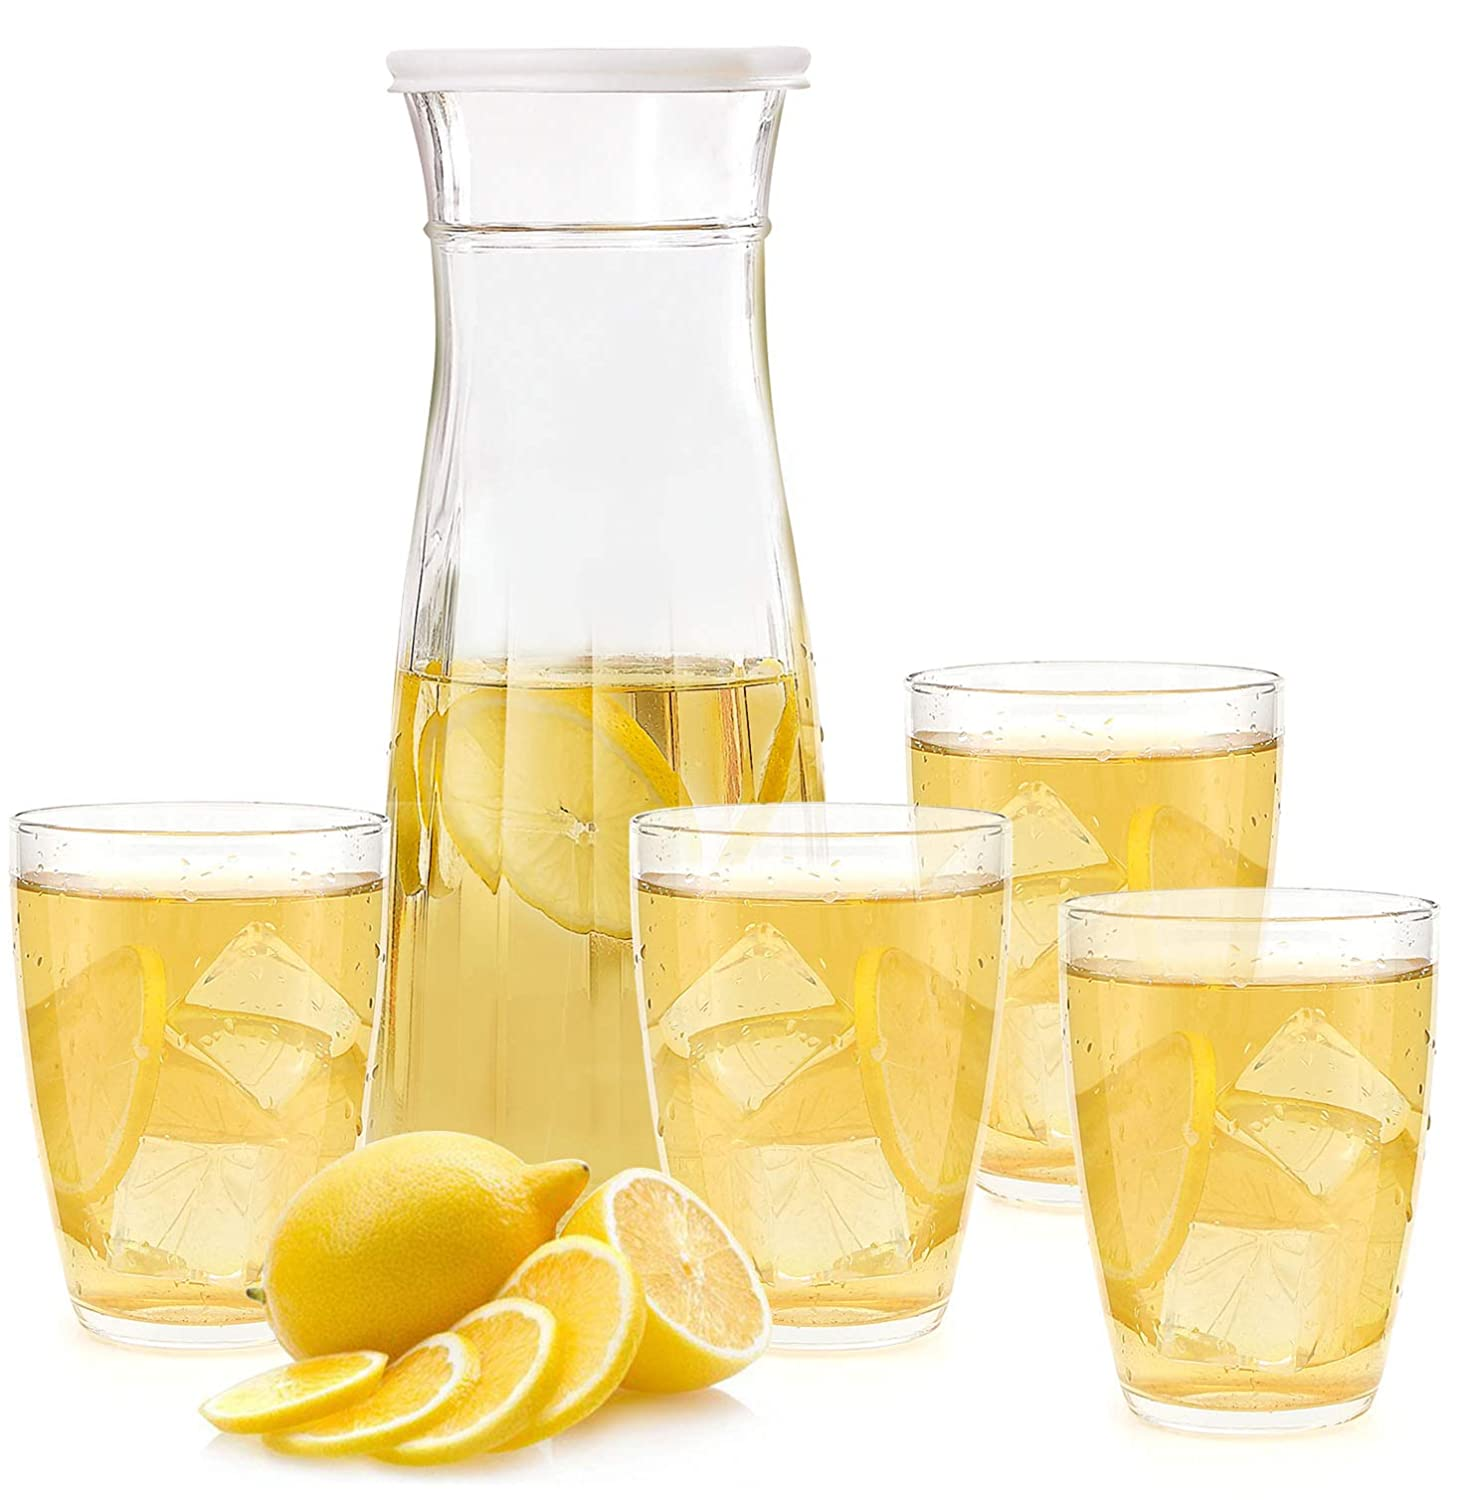 Glass Cup Set,Glass Pitcher Set,34 OZ Glass Water Pitcher and 8 OZ Drinking Glass Cup for Hot&Cold Water Ice Tea Juice Beer Beverage,Party Cups for Home Kitchen Daily Use( 1 Pitcher and 4 Cups)